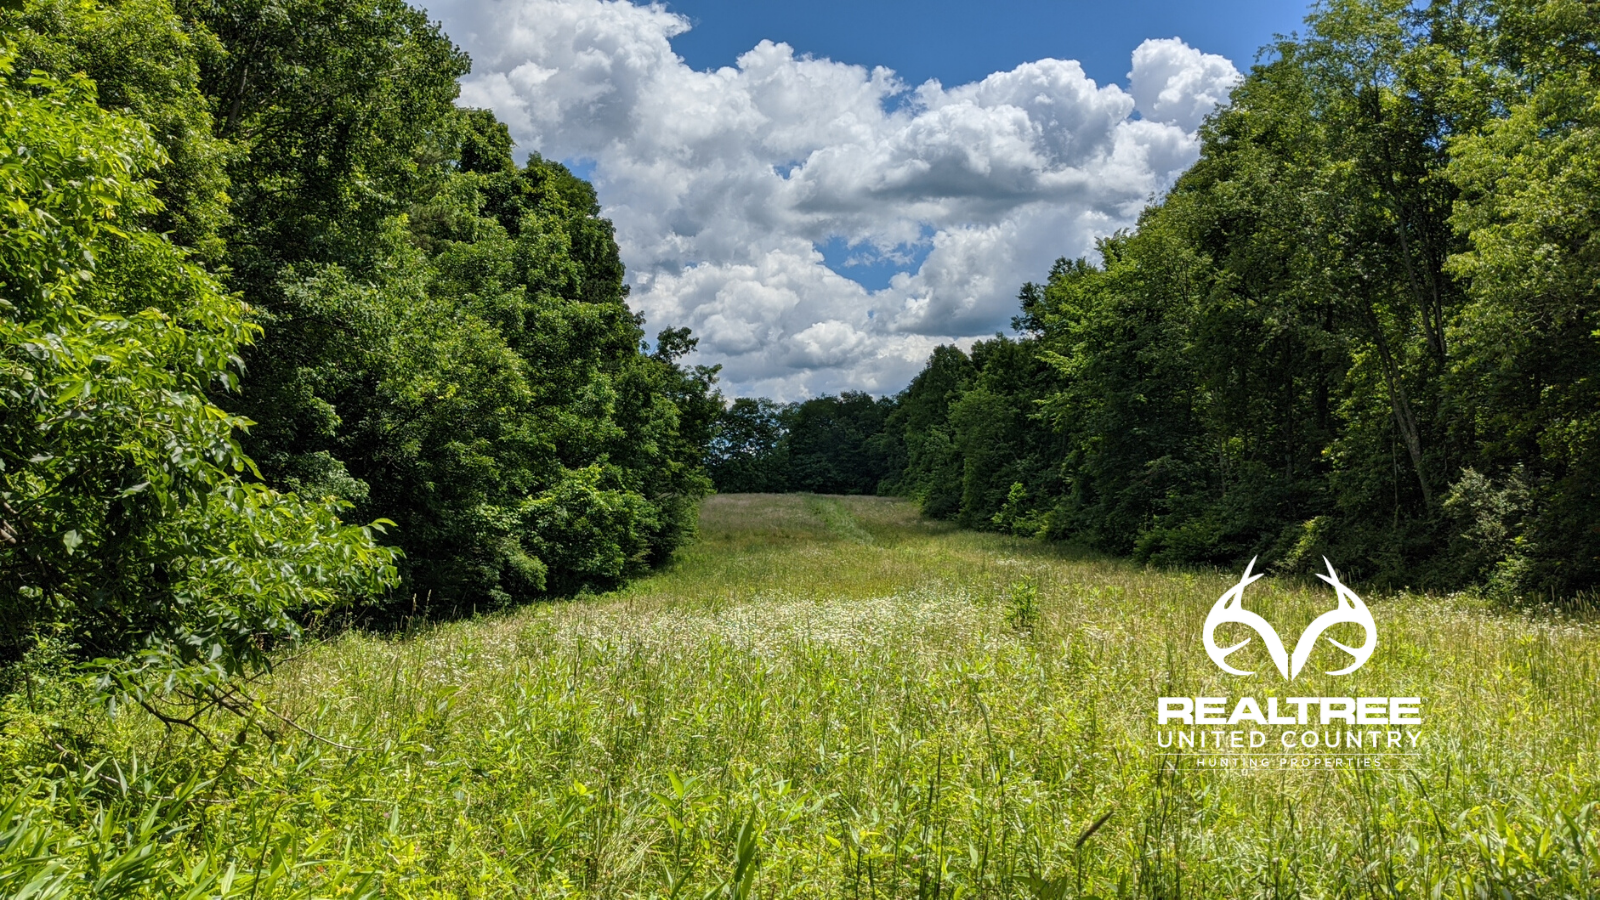 32 Acre Honey Hole Adjoining Federal Hunting Land